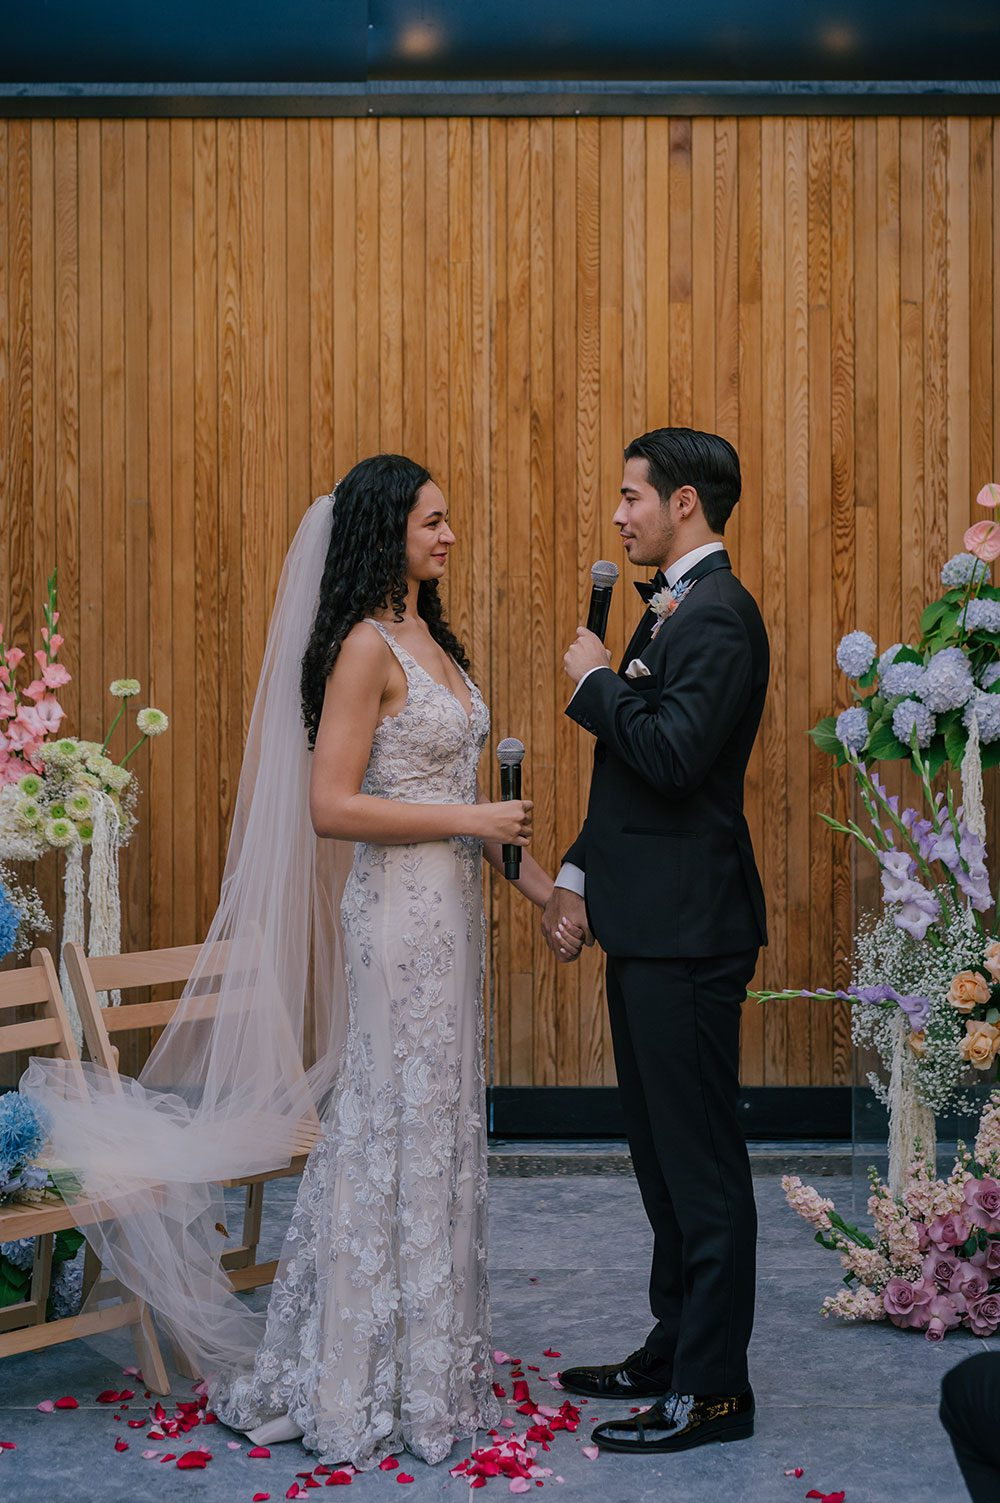 Bride wearing Kazumi Gown in soft grey with hand embellished lace and a low back - saying vows